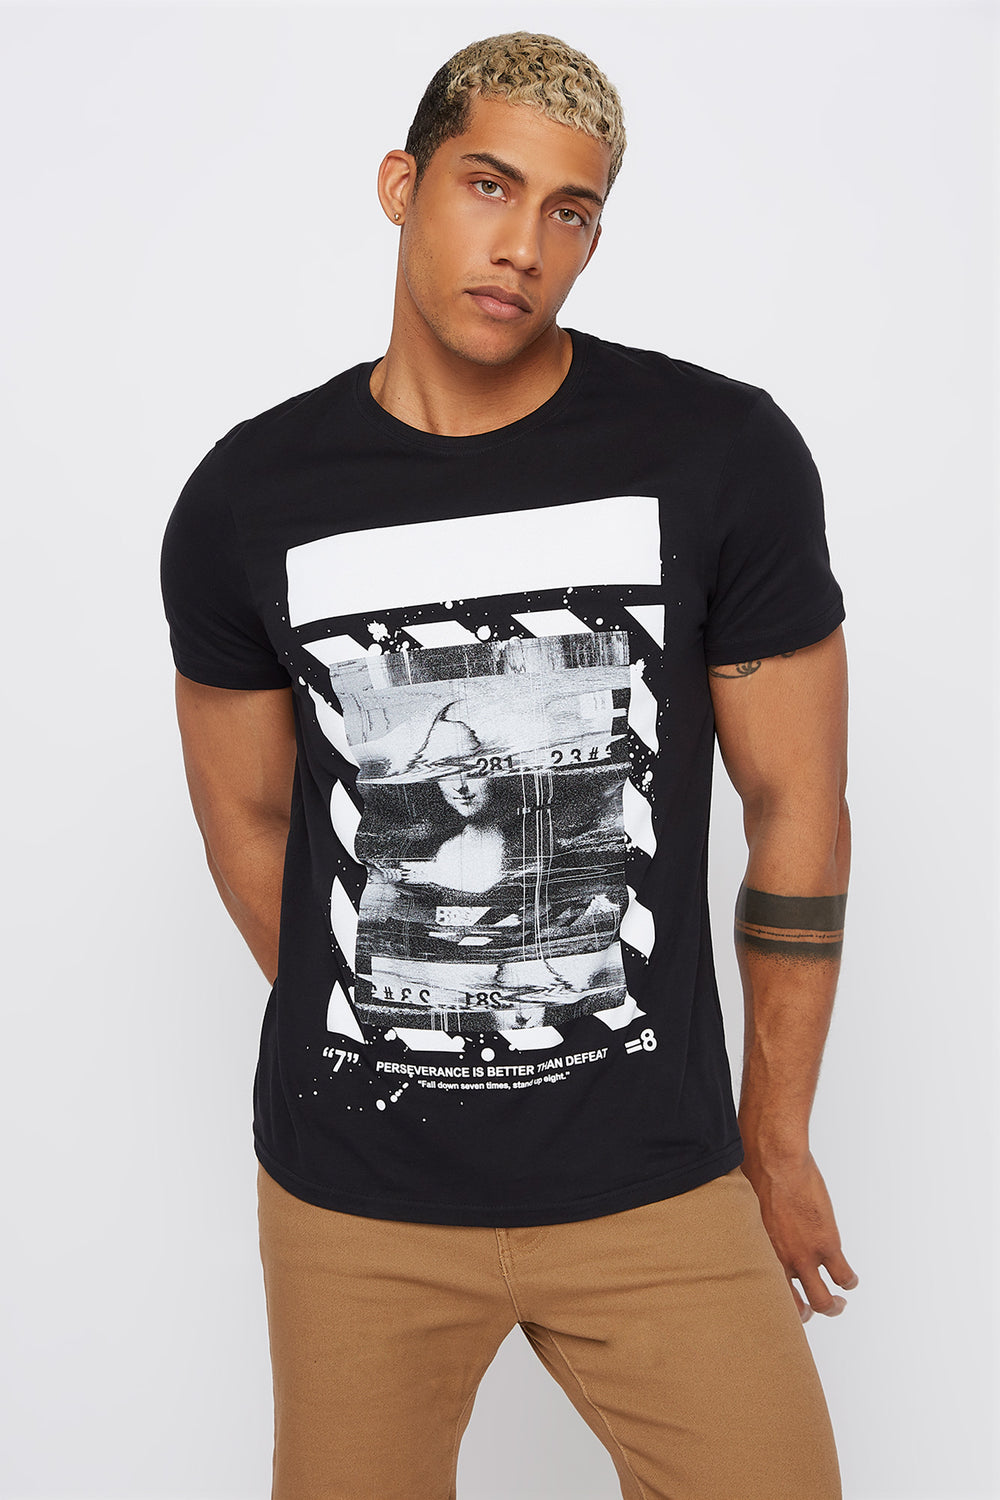 Mona Lisa Glitch T-Shirt Black